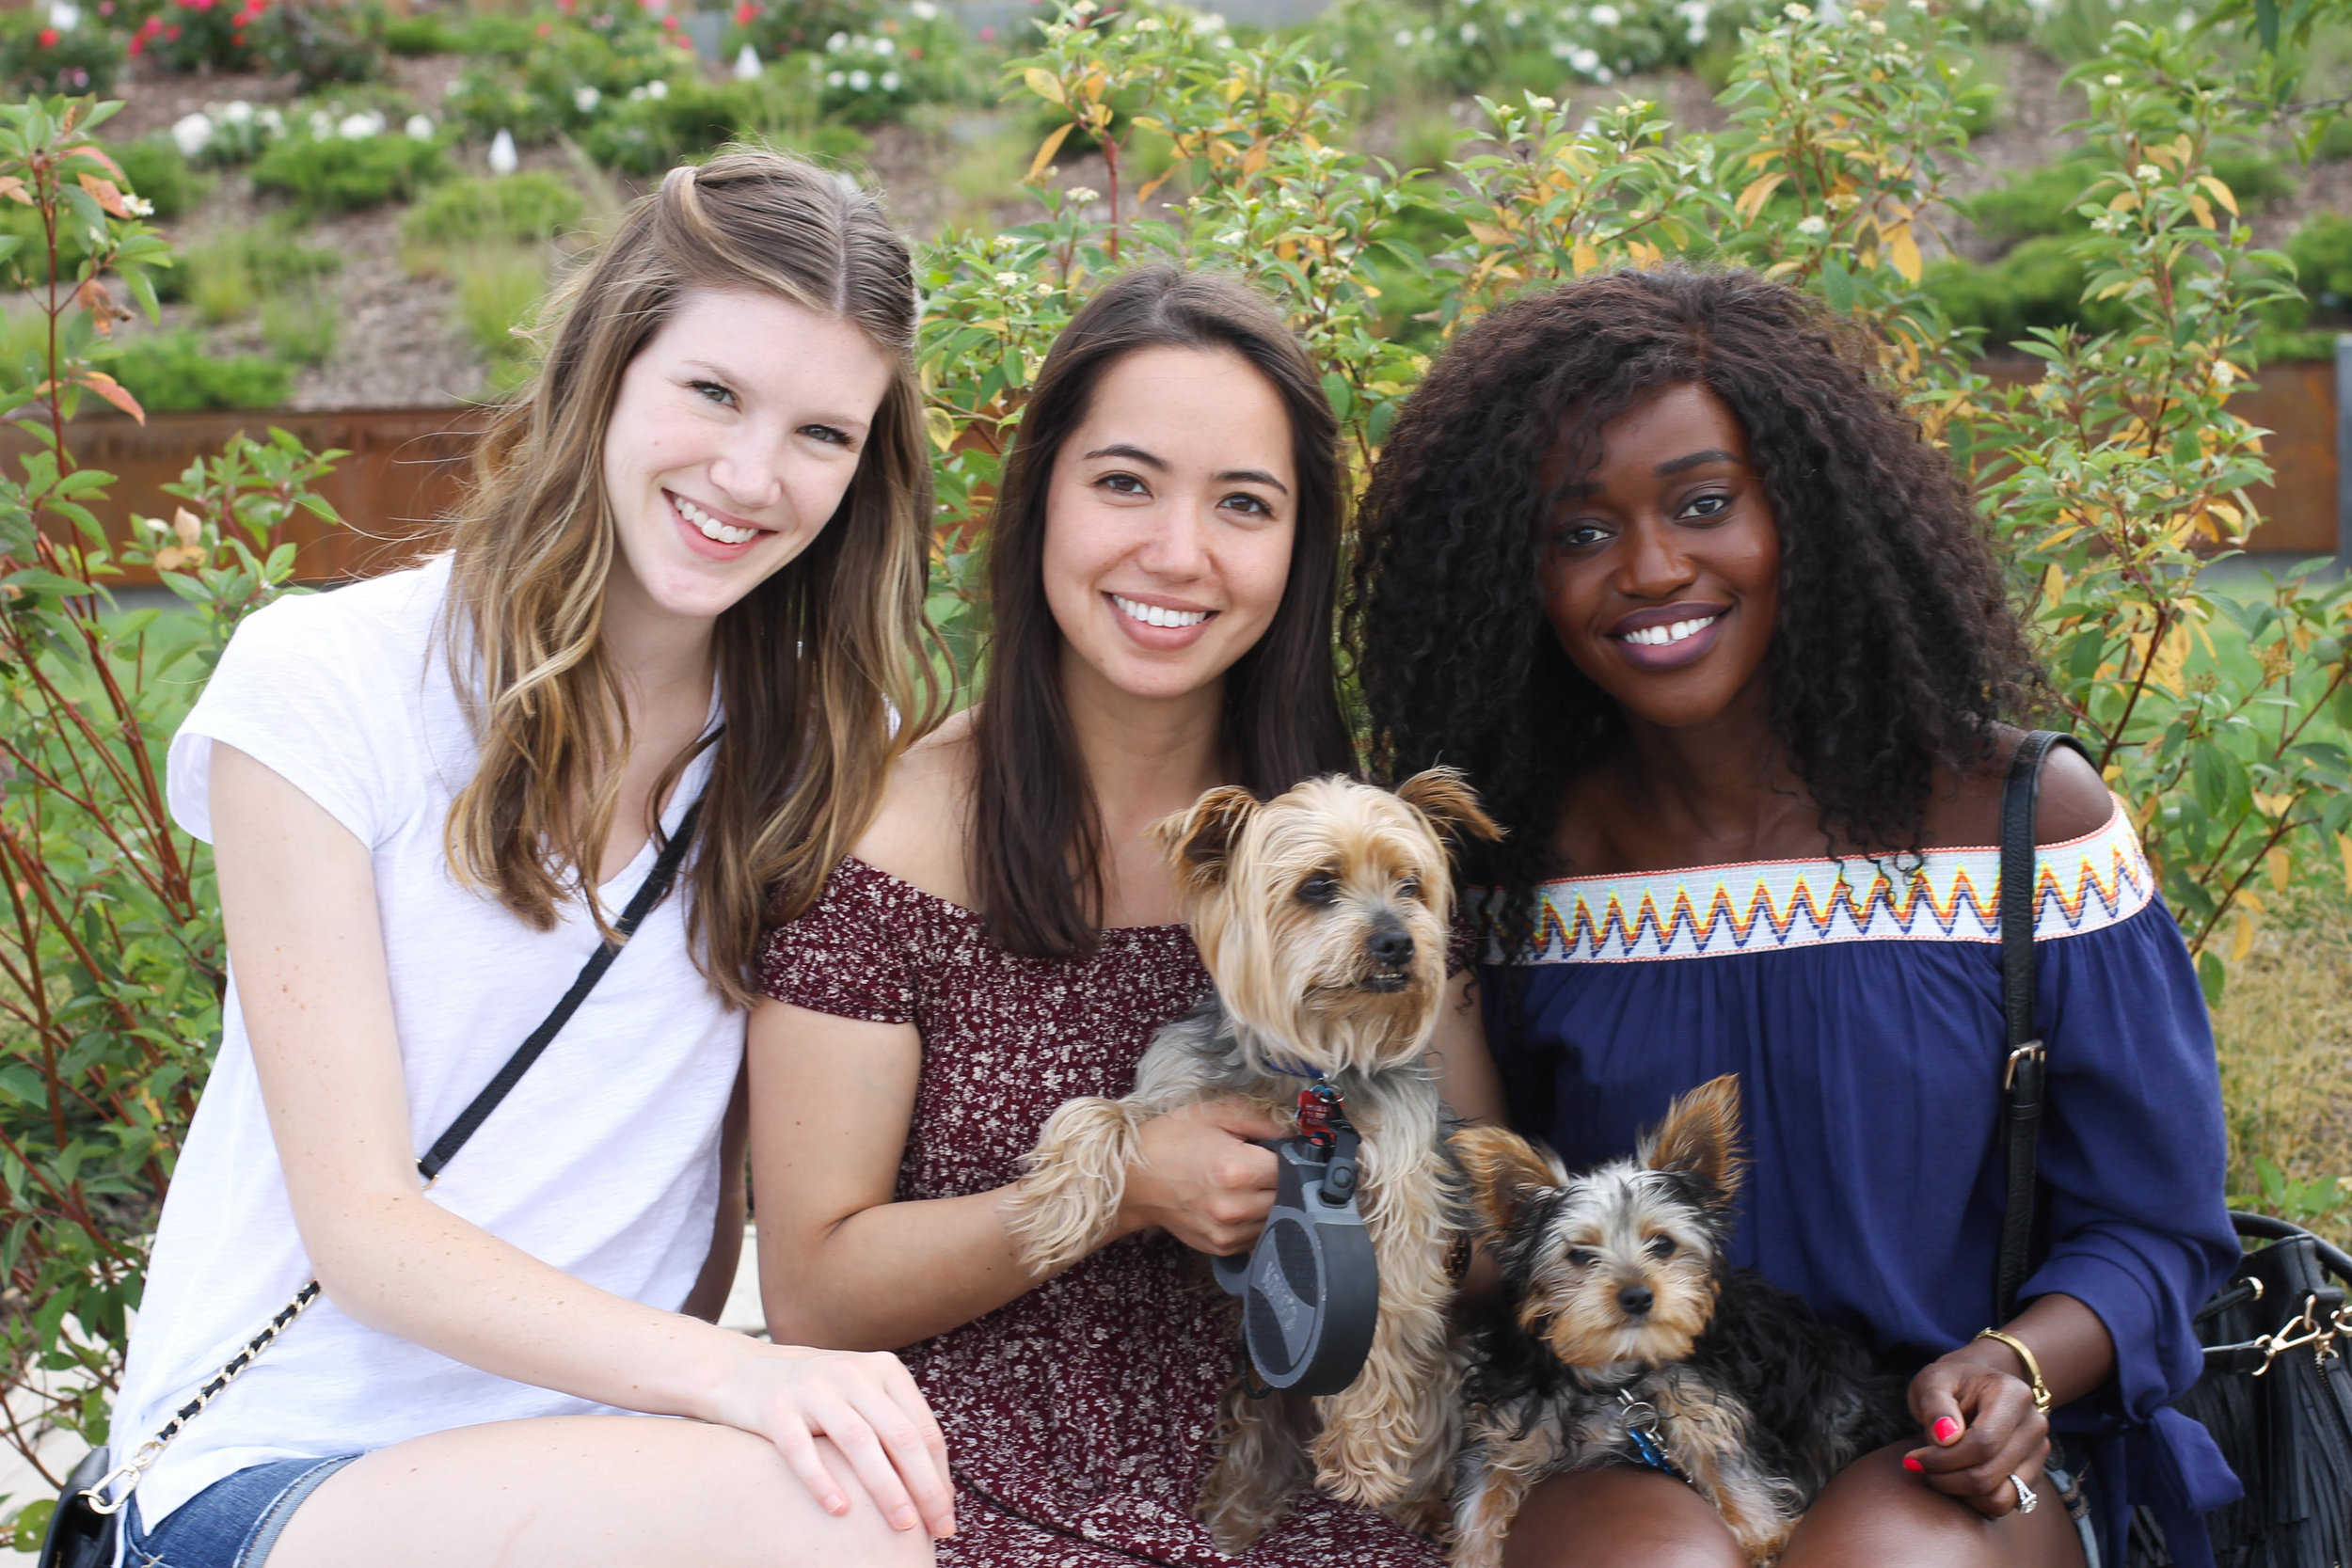 Melanie, Catie, and Lulu (plus Harry and Tyson), from left to right